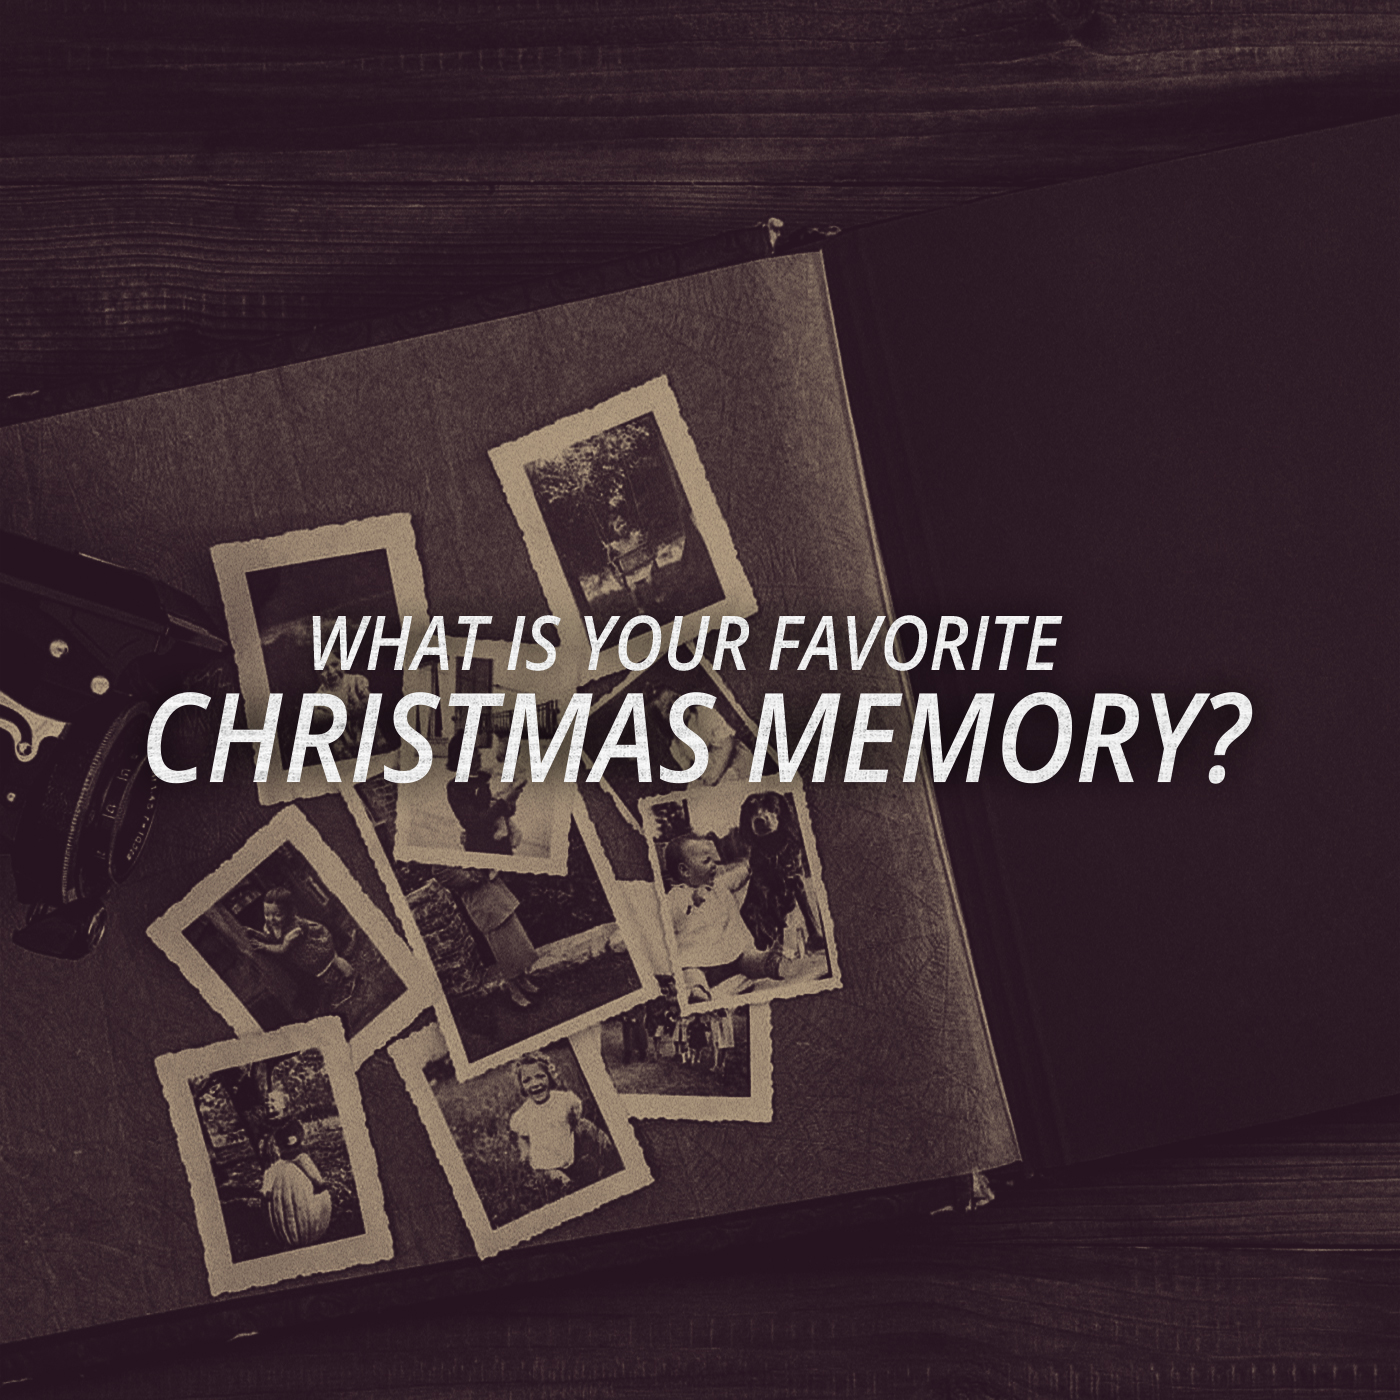 Share your favorite Christmas memories with us!